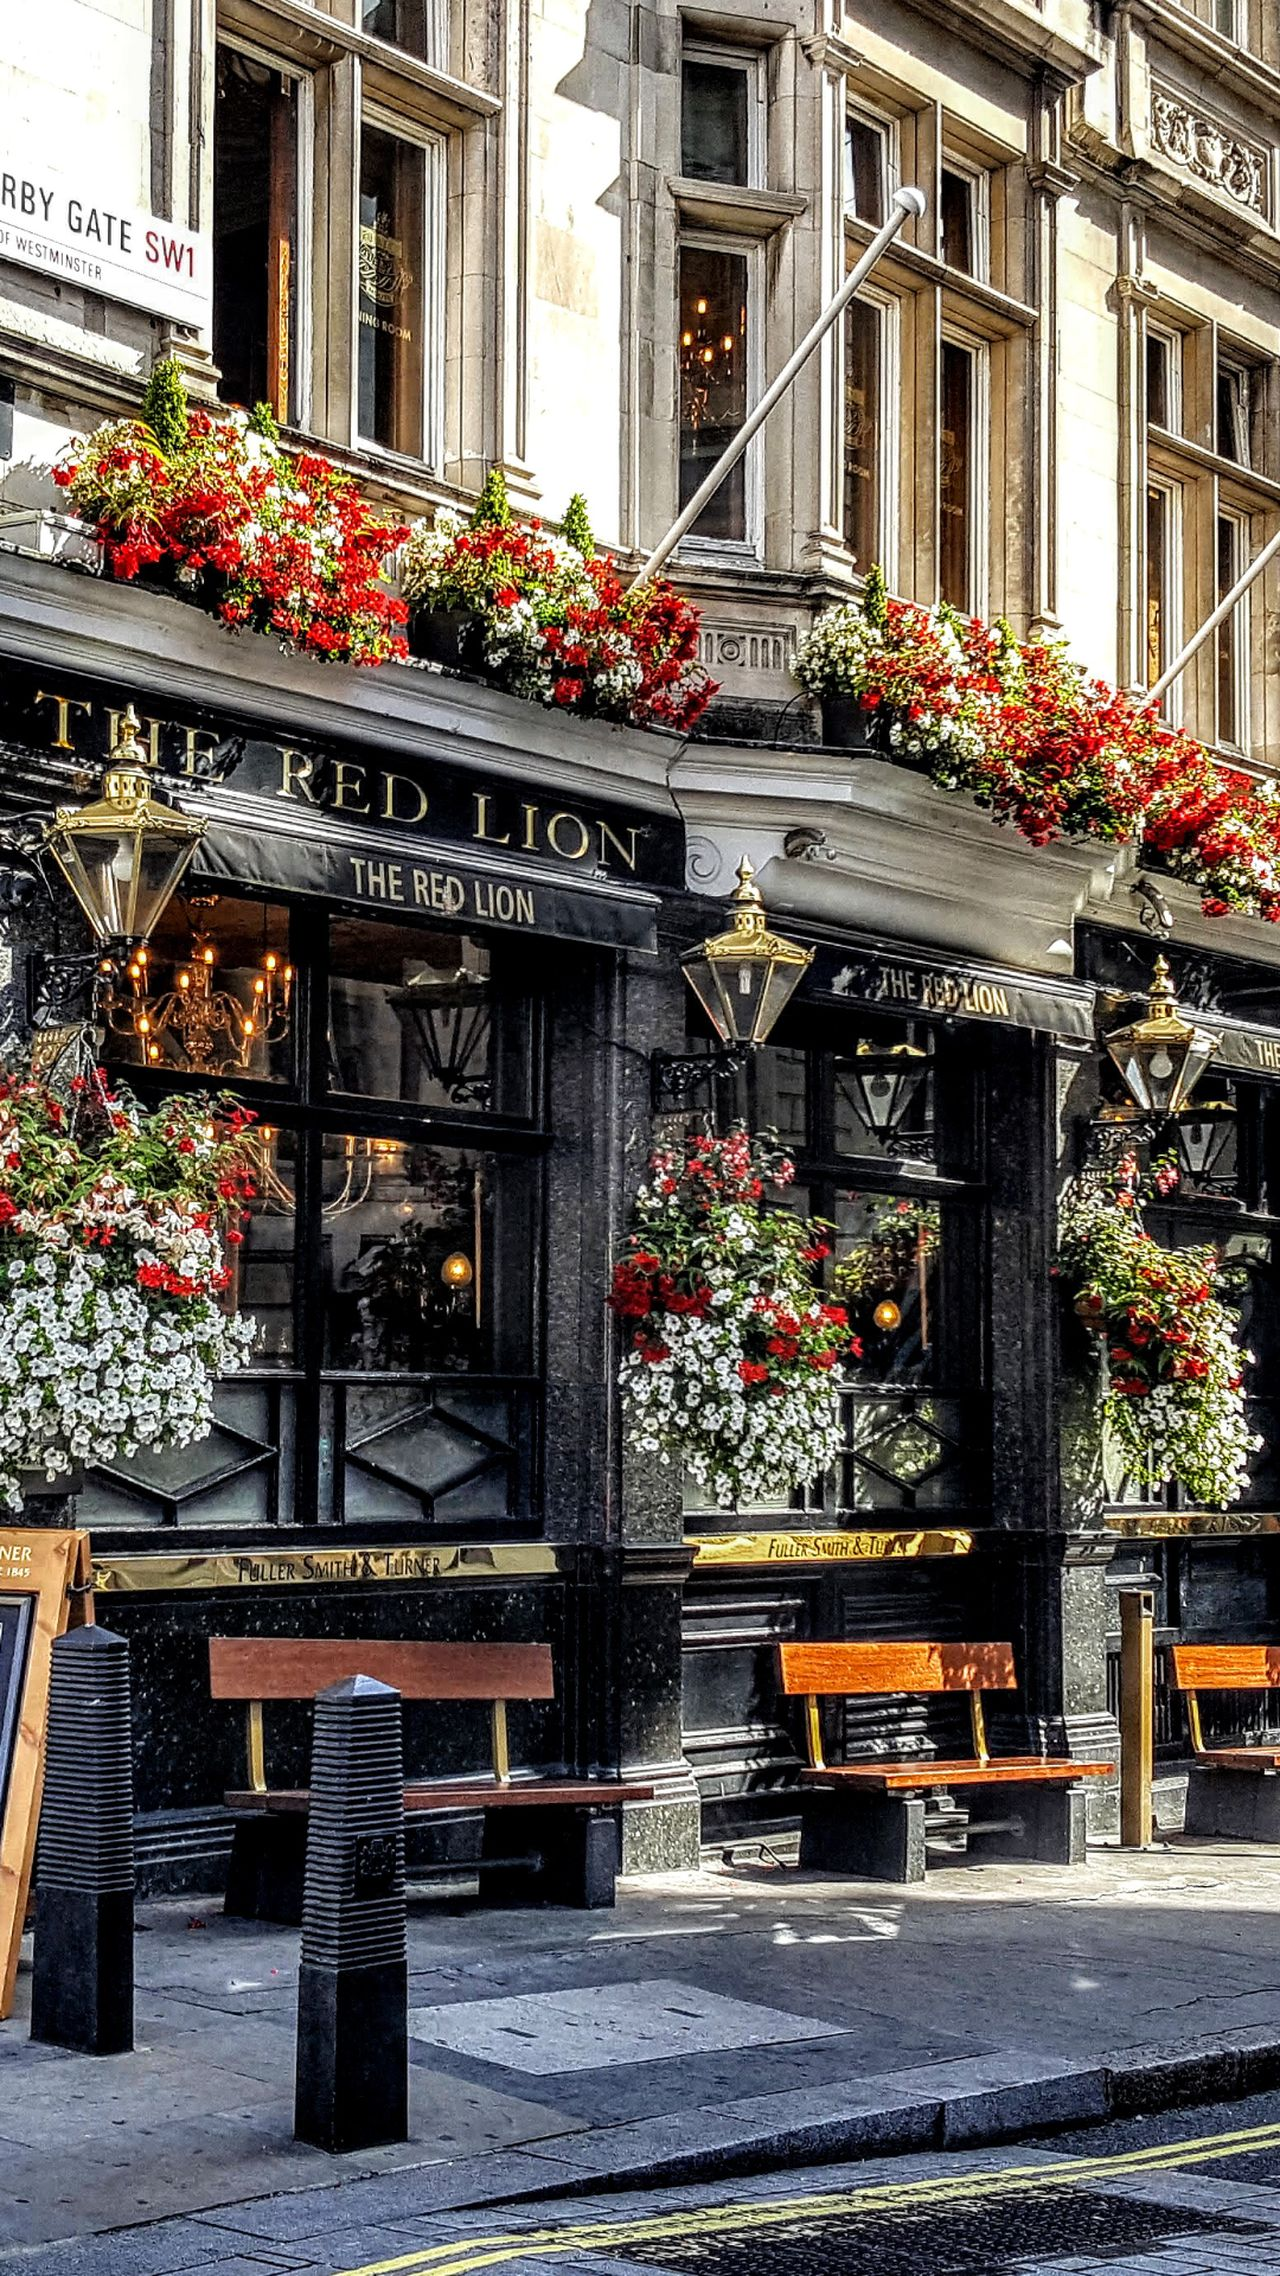 Architecture Built Structure Building Exterior Outdoors Flower Travel Destinations Window Box No People Day City Londononly London's Buildings LONDON❤ Friends ❤ London Photography London Life Facebook Page Tranquil Scene London Modern Cityscape London Streets Skyscraper Cloud - Sky Low Angle View